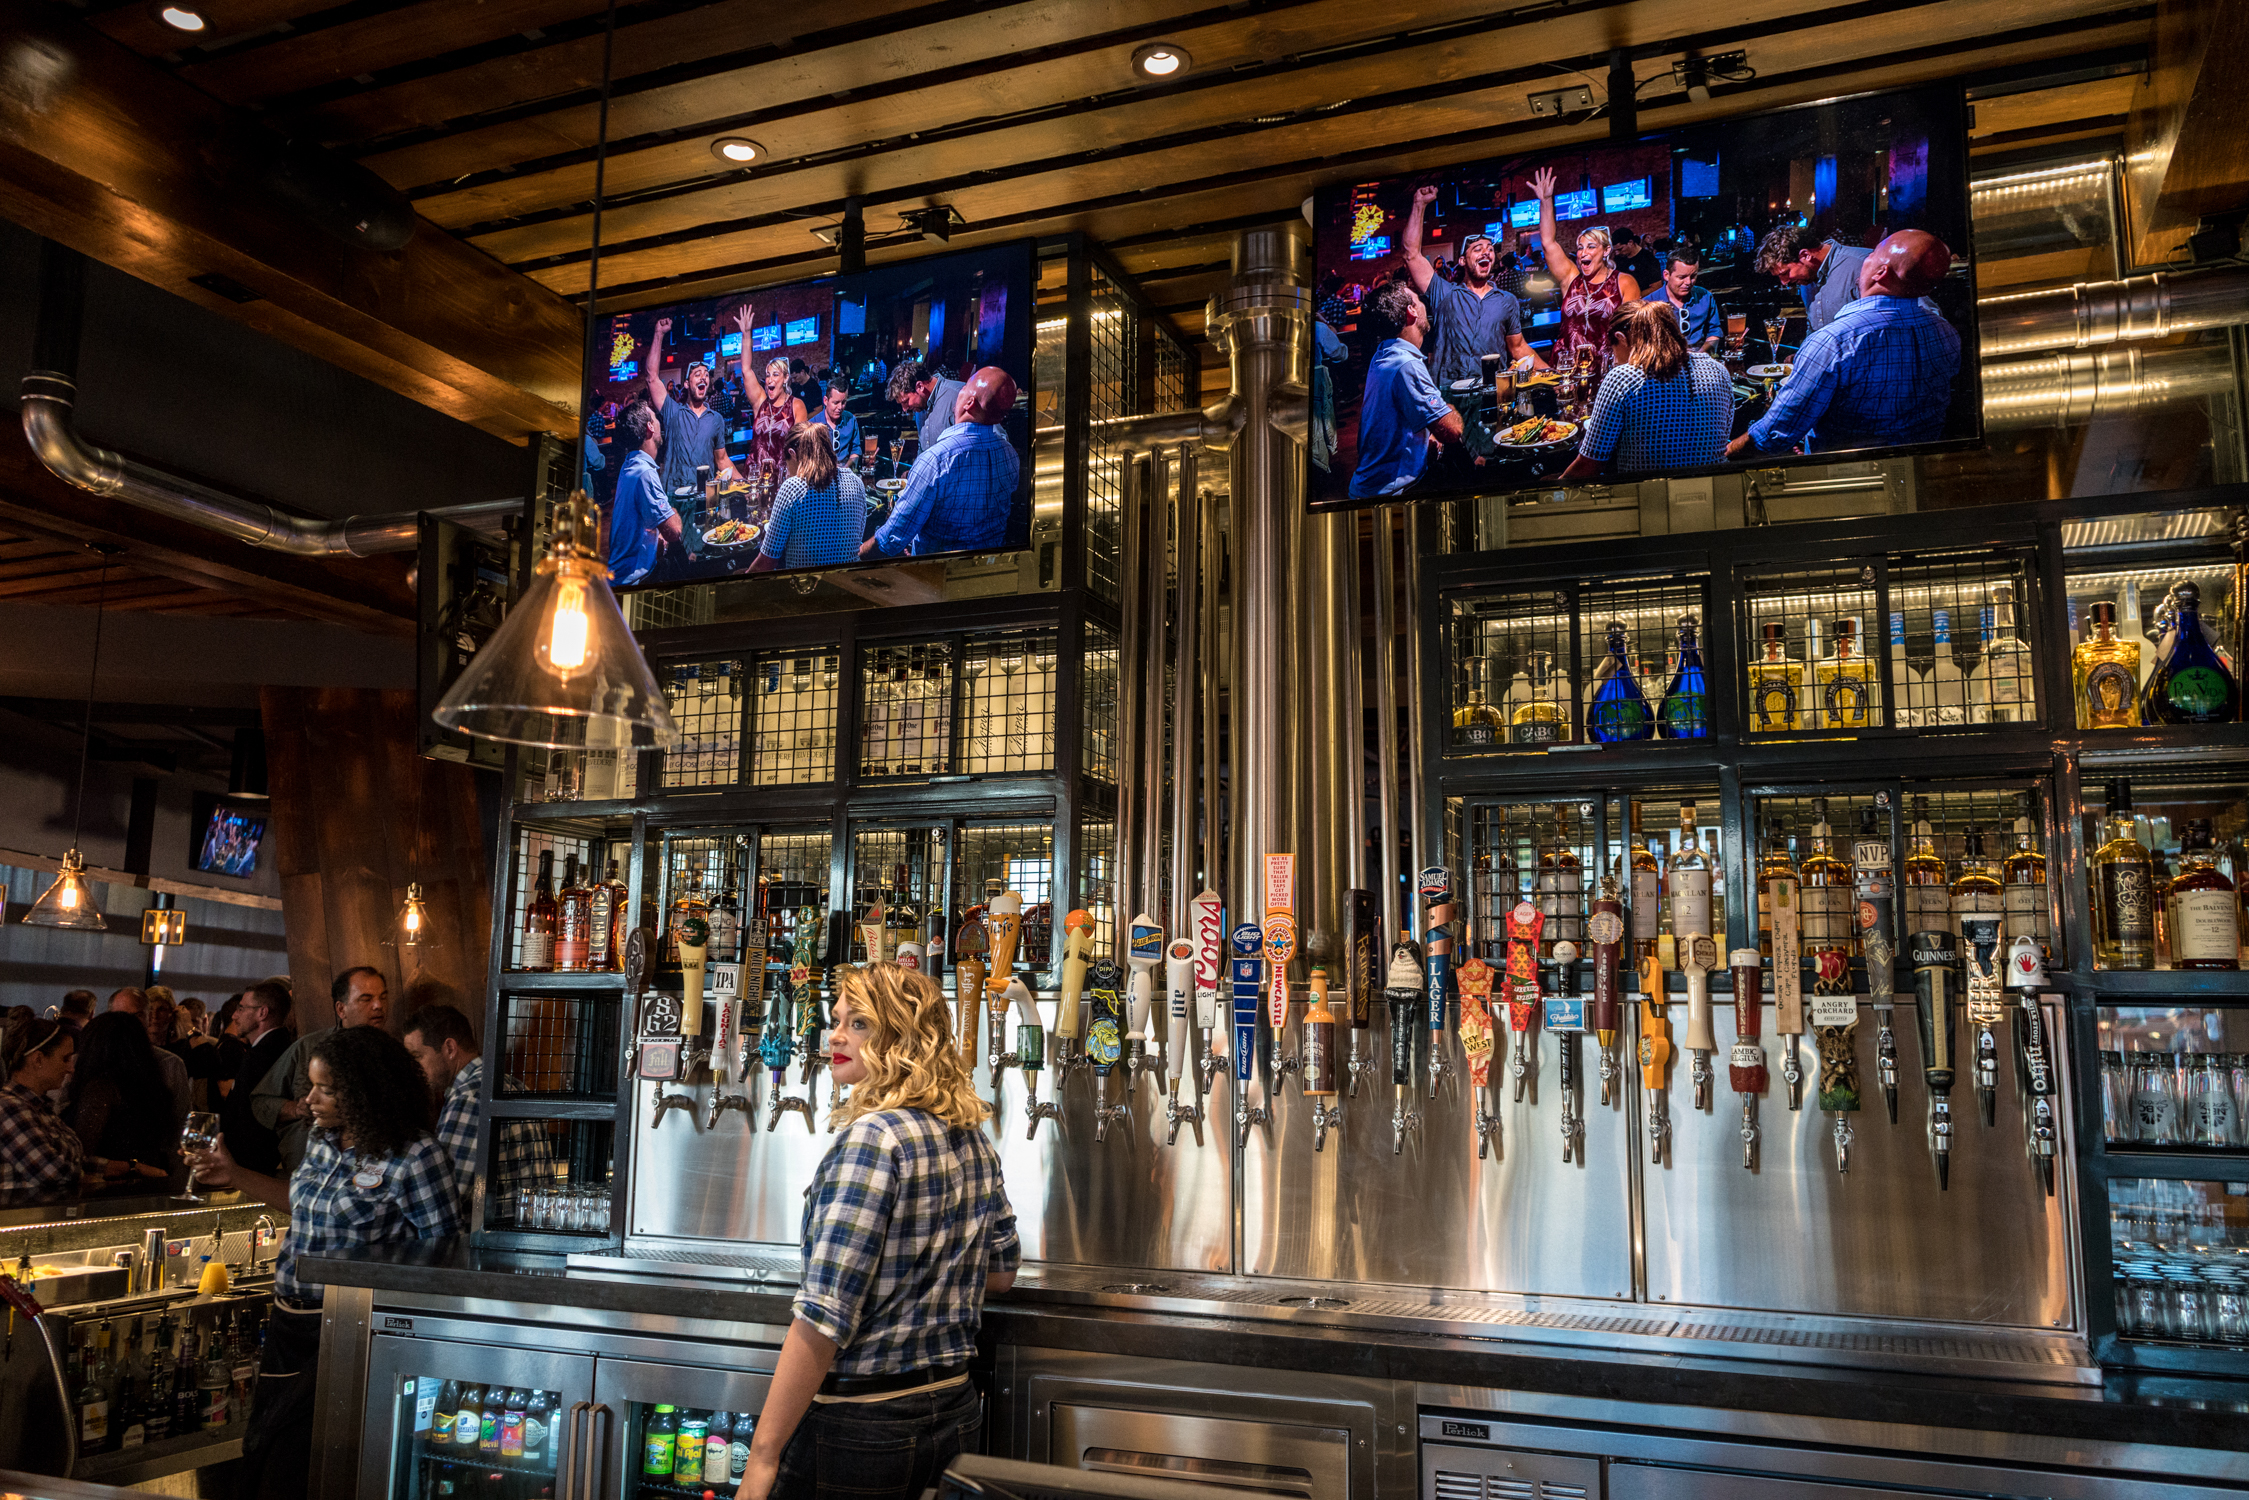 A large wall of draft beers on tap at NBC Sports Grill & Brew